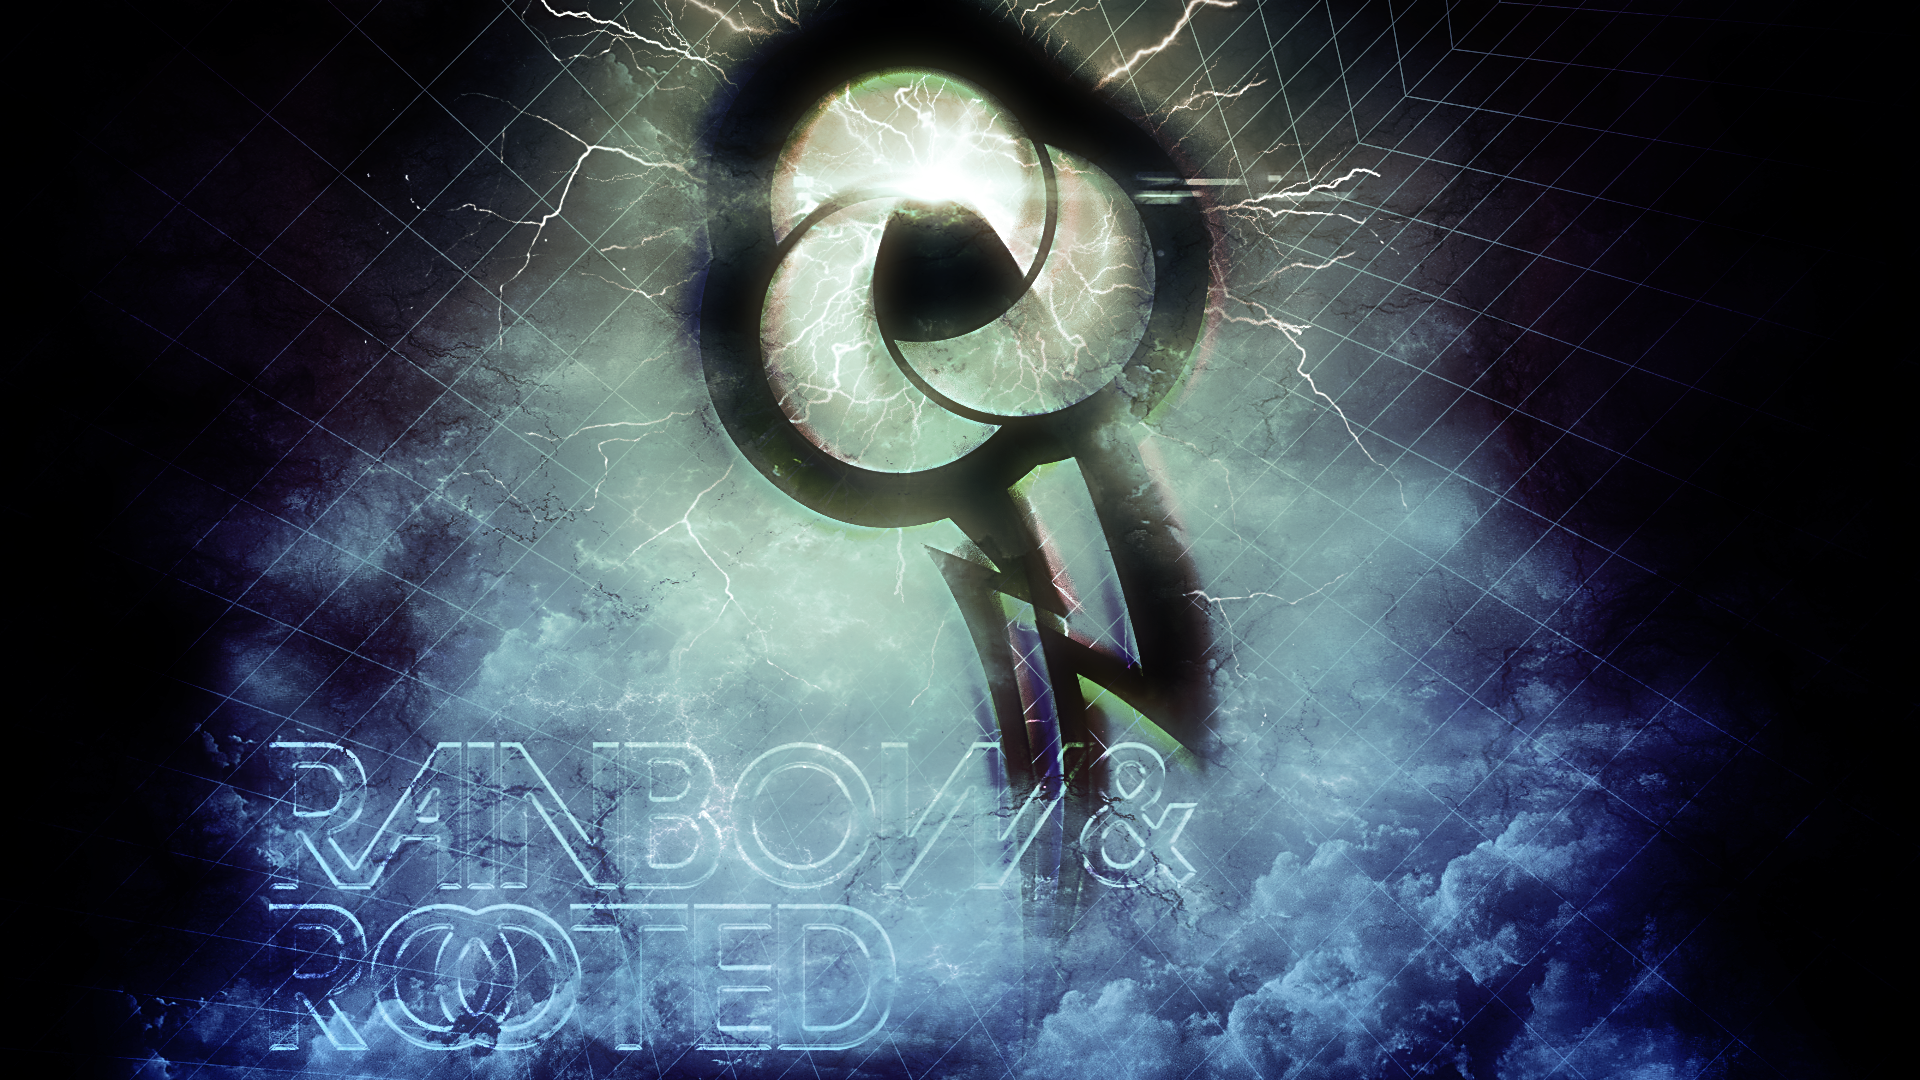 Rainbow and Rooted 2 - Wallpaper by Tzolkine and WMill